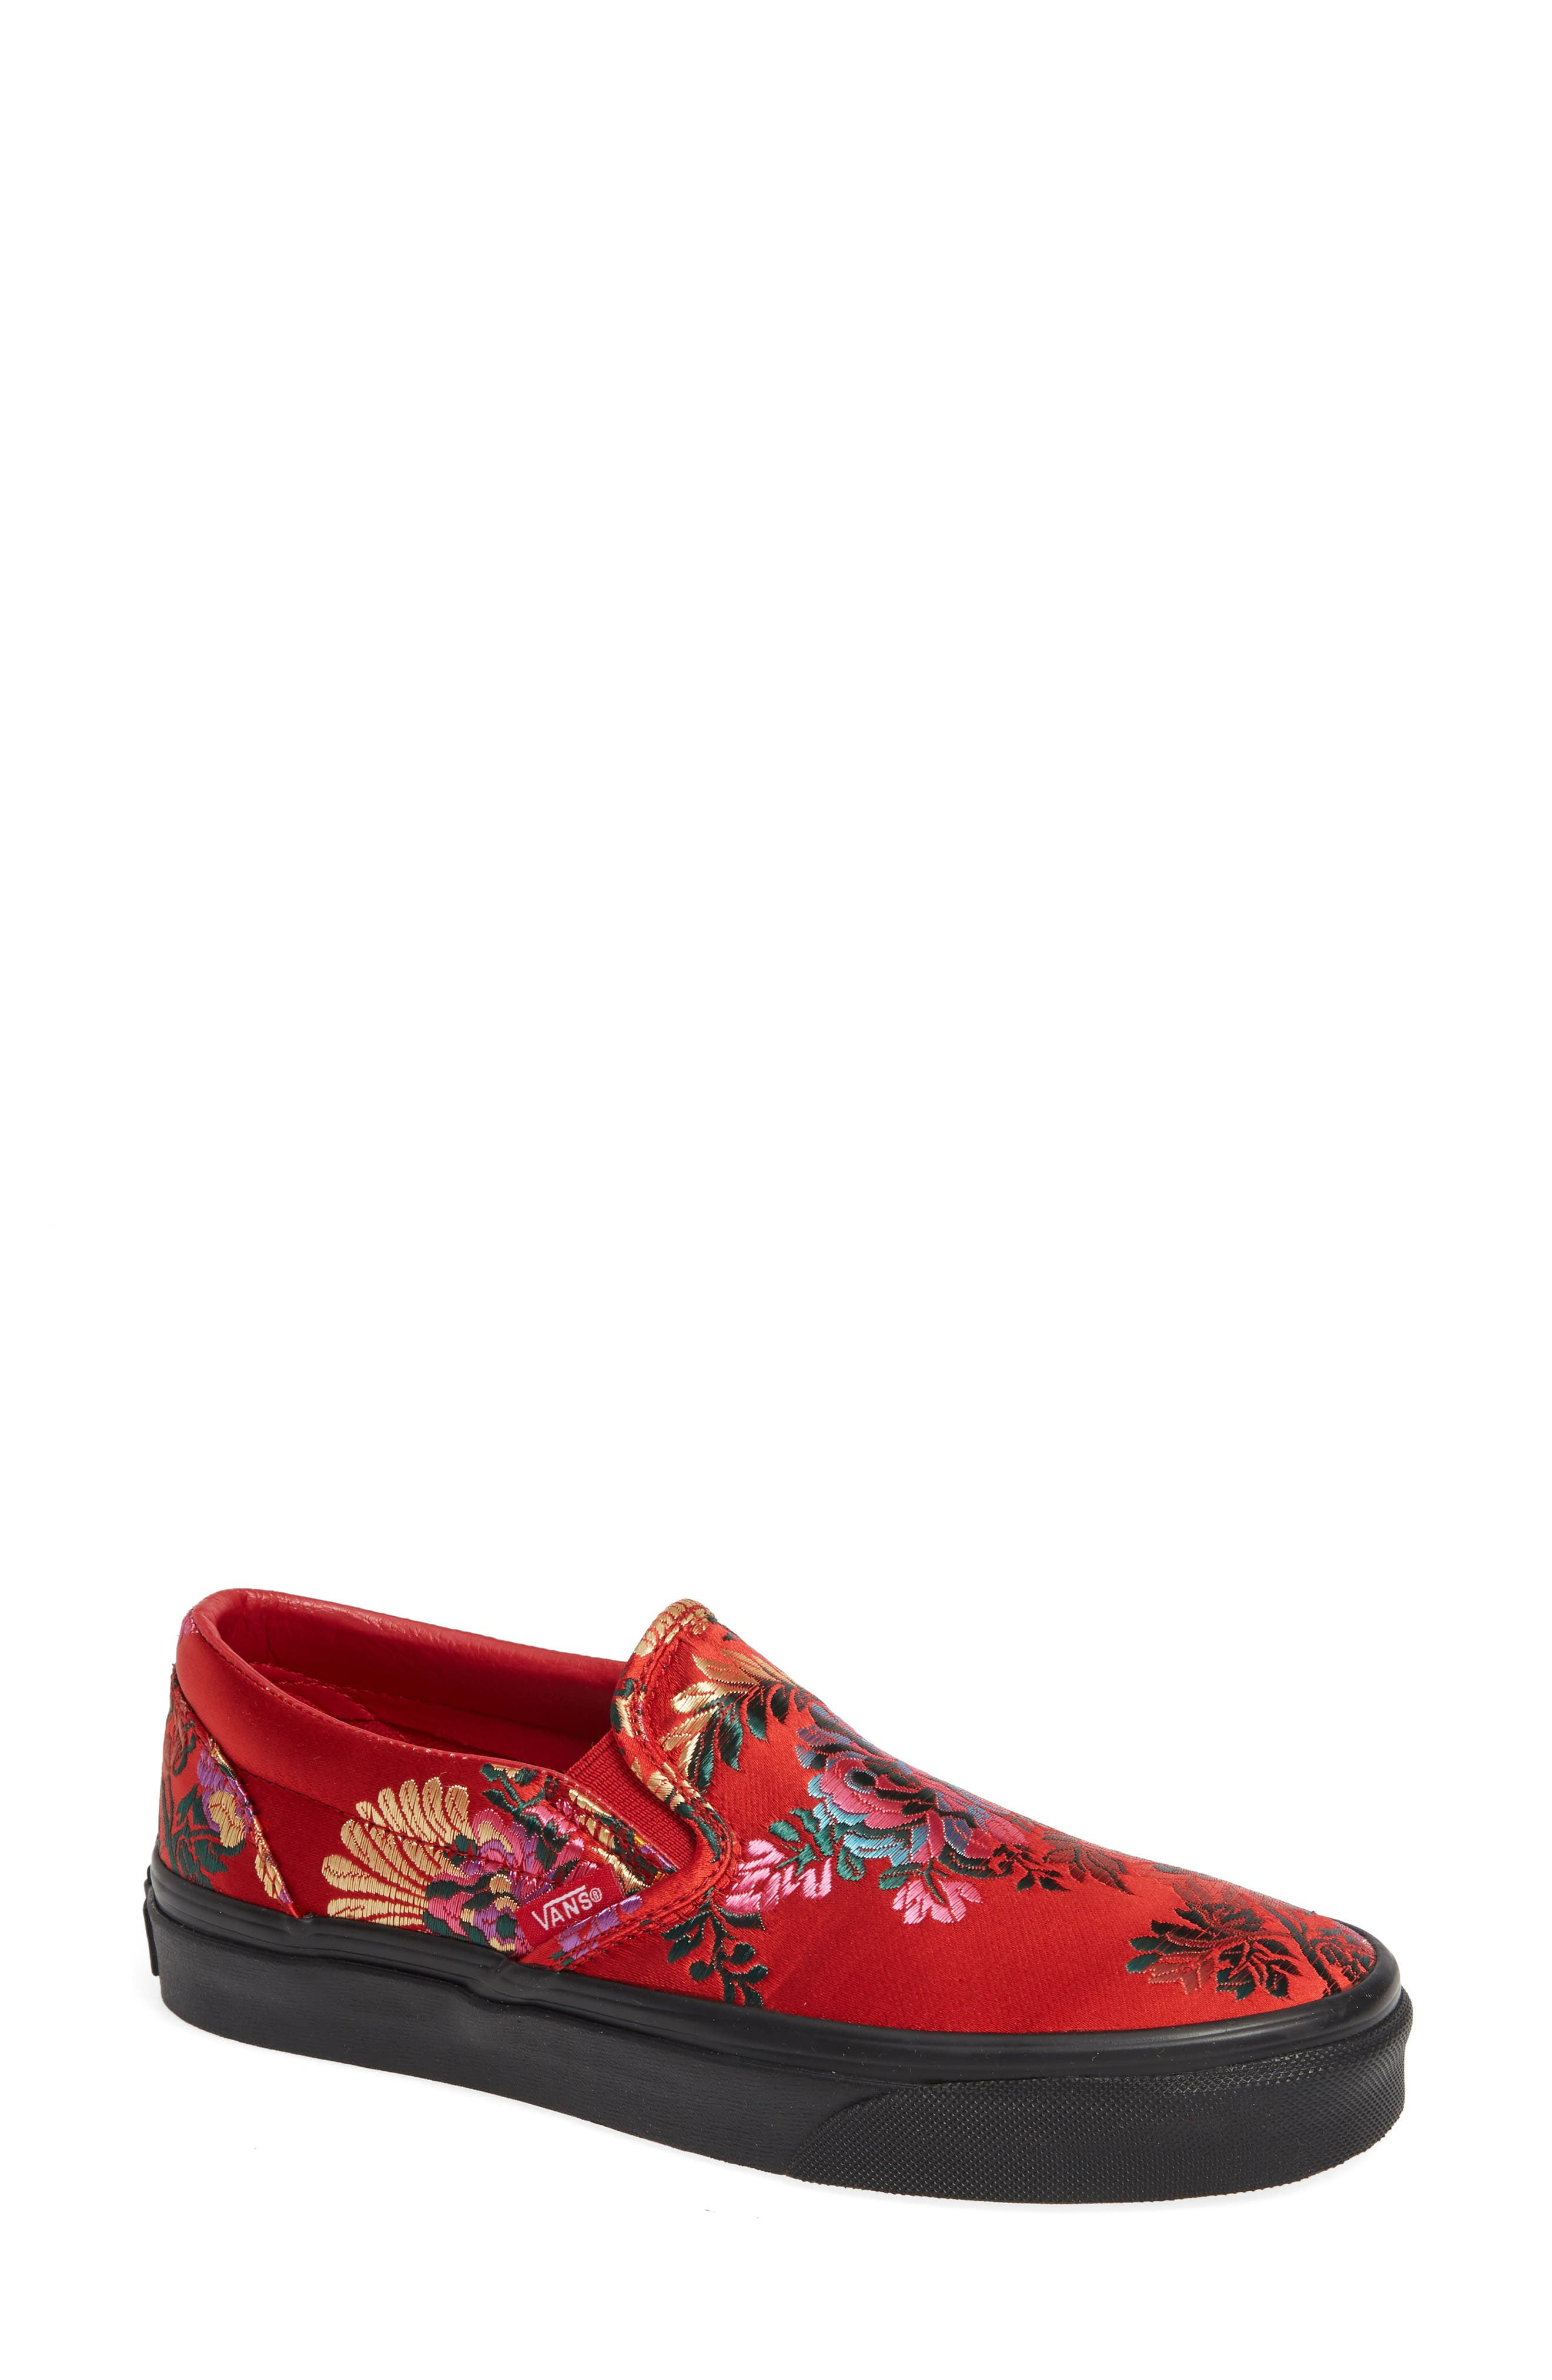 Classic Embroidered Satin Slip-On Sneaker, Main, color, RED/ BLACK